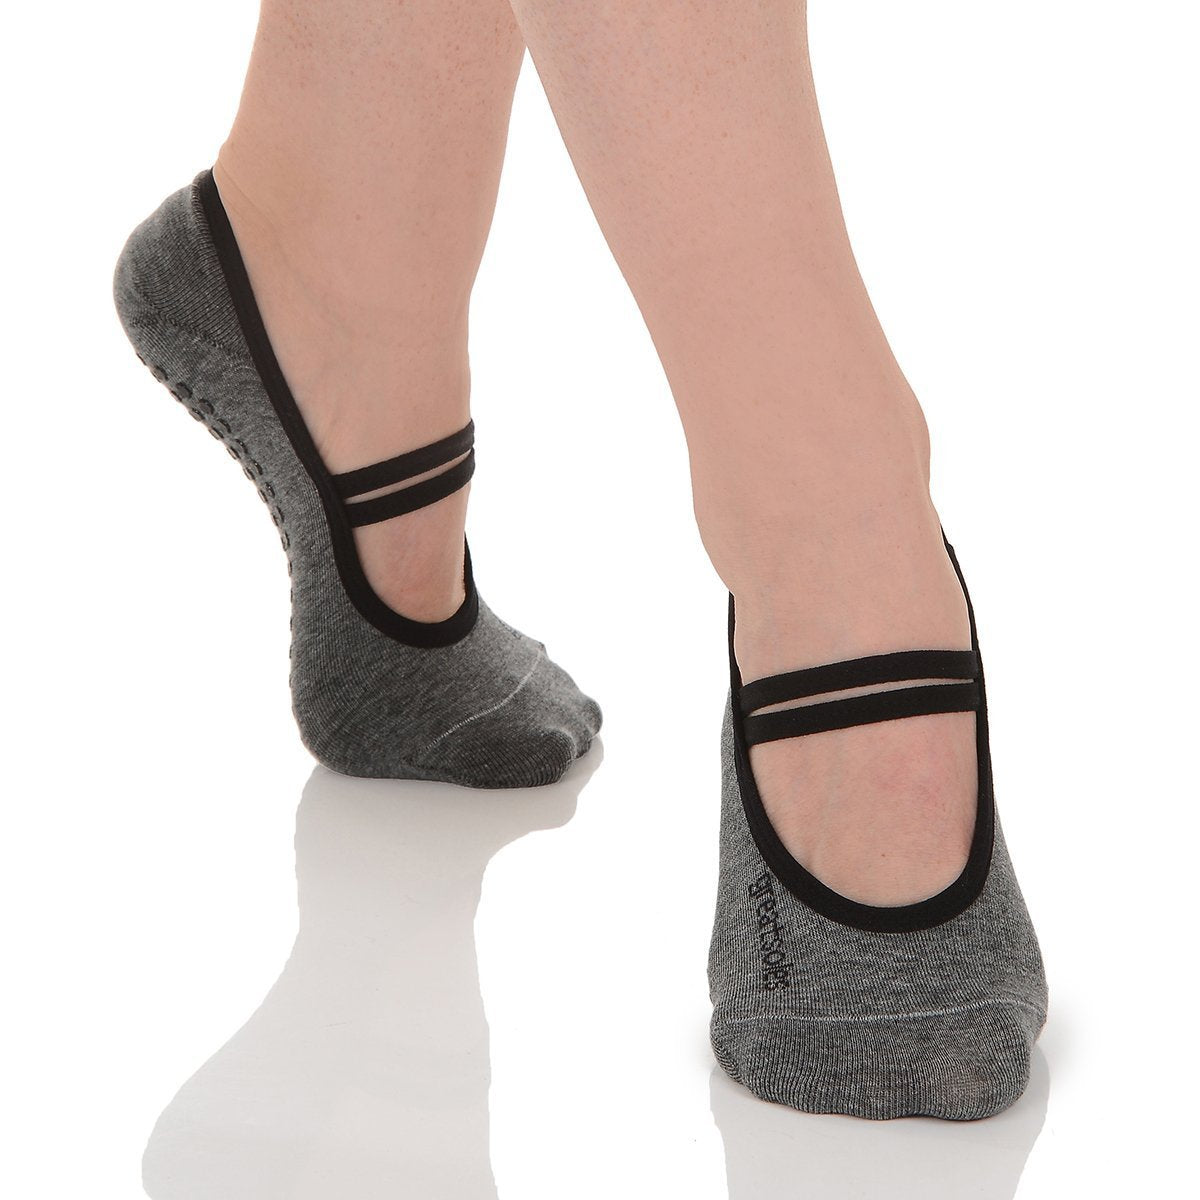 Ballet Grip Sock - Heather Grey/Black